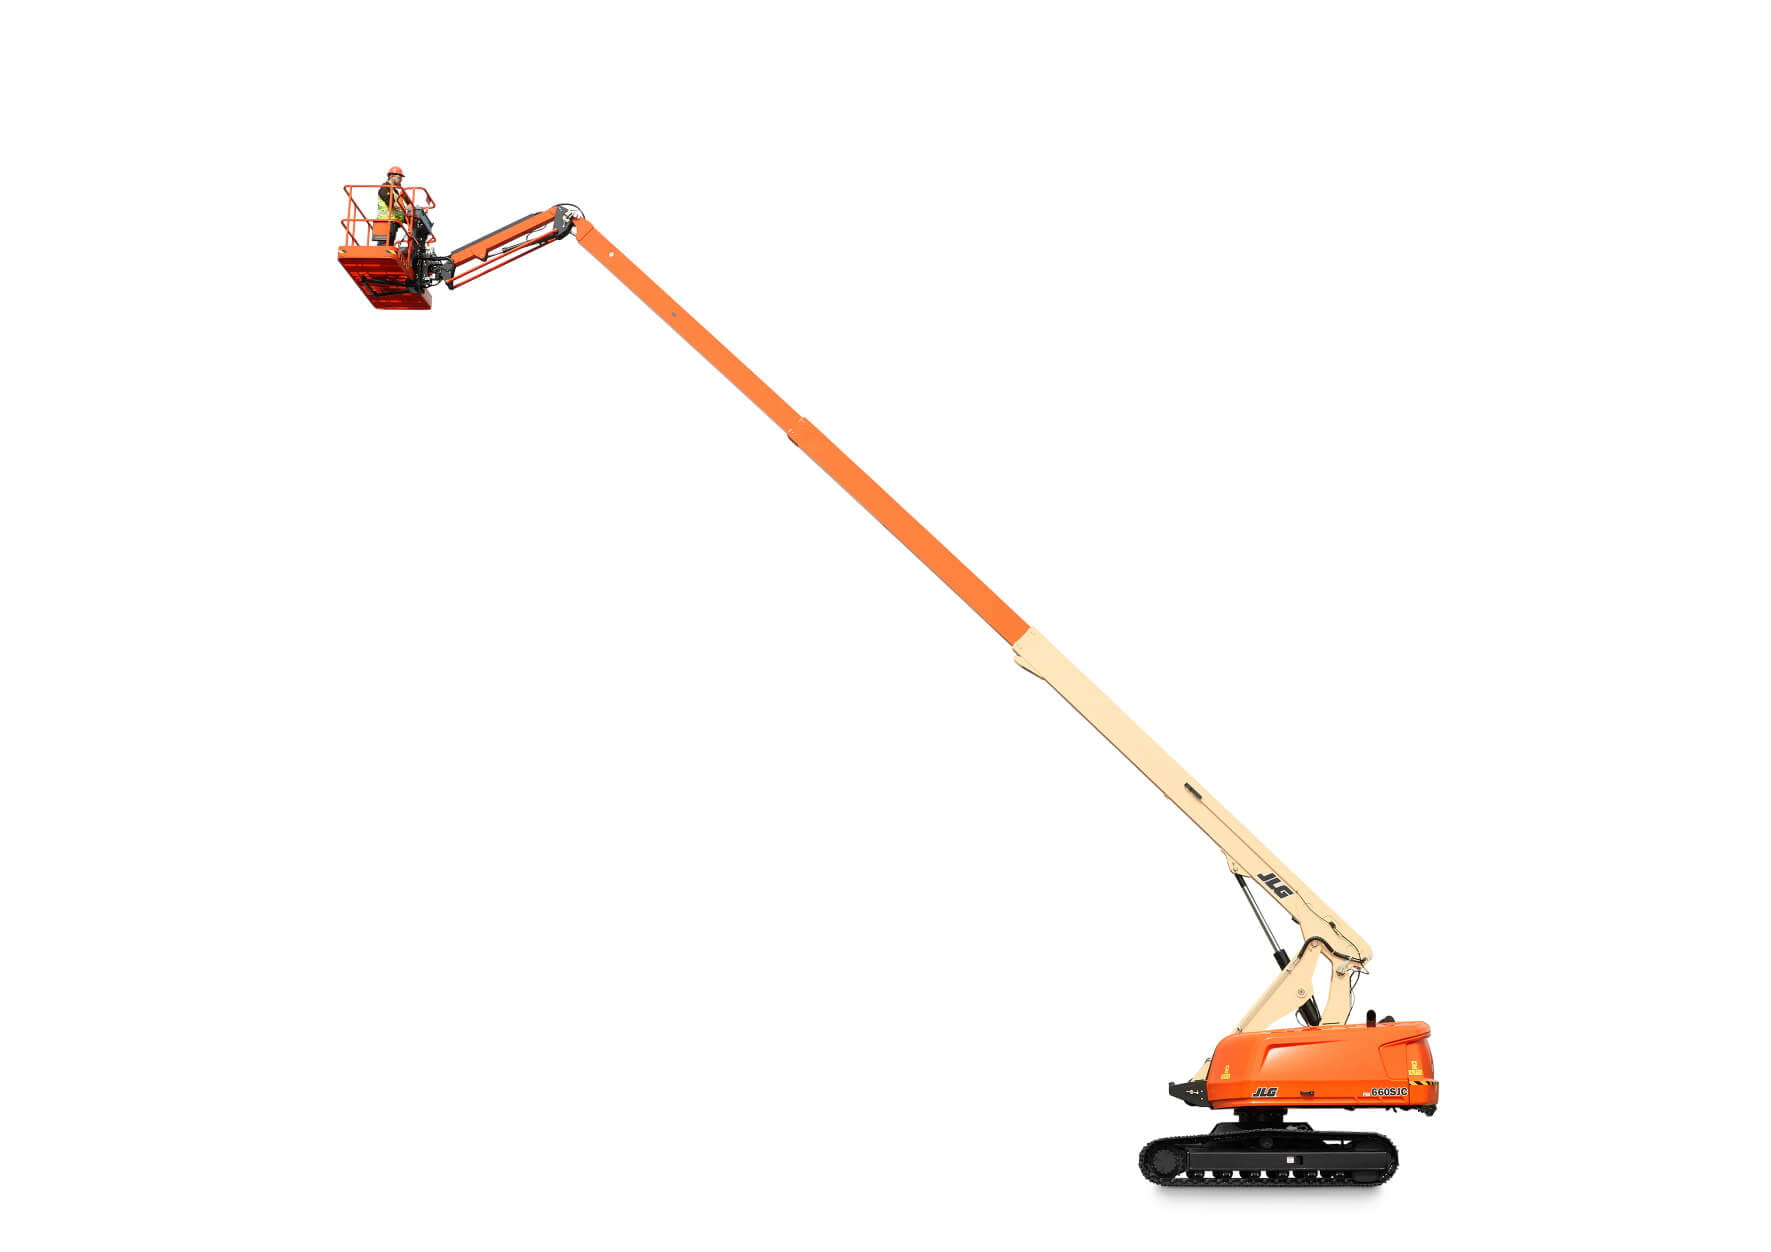 Crawler Lift Rental | Crawler Lift for Rent | Aerial Work Platforms